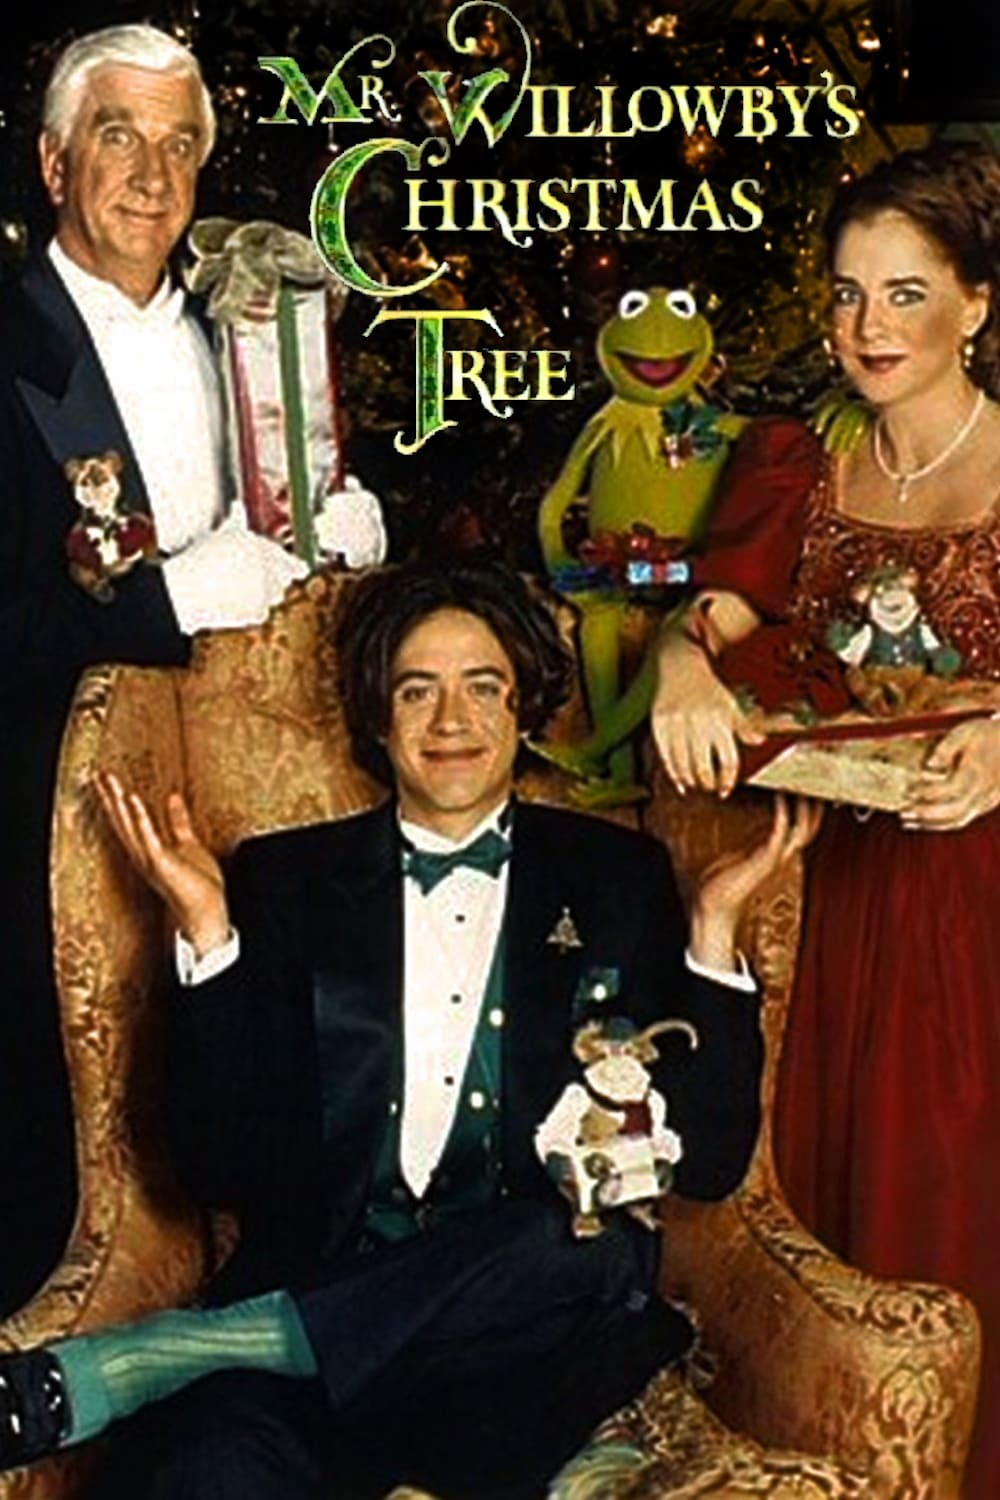 Mr. Willowby's Christmas Tree (1995)